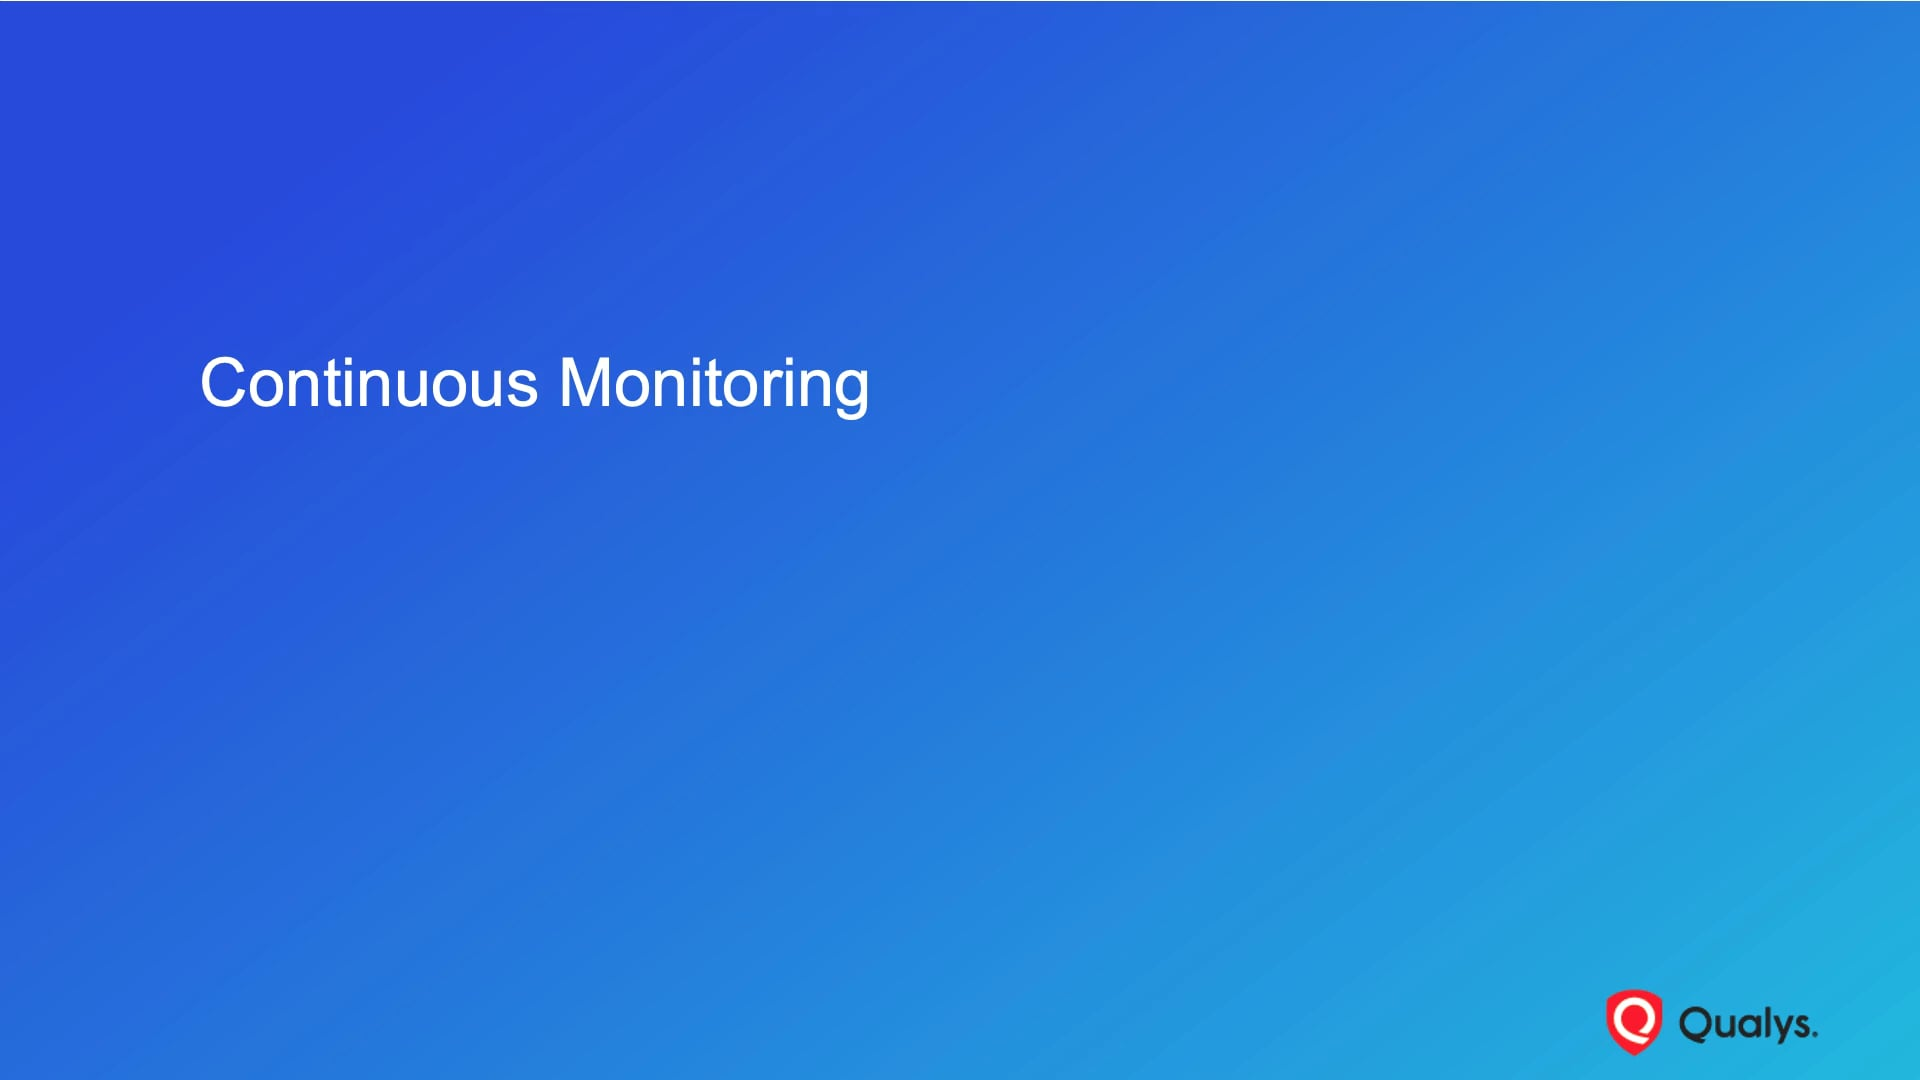 Continuous Monitoring - Introduction